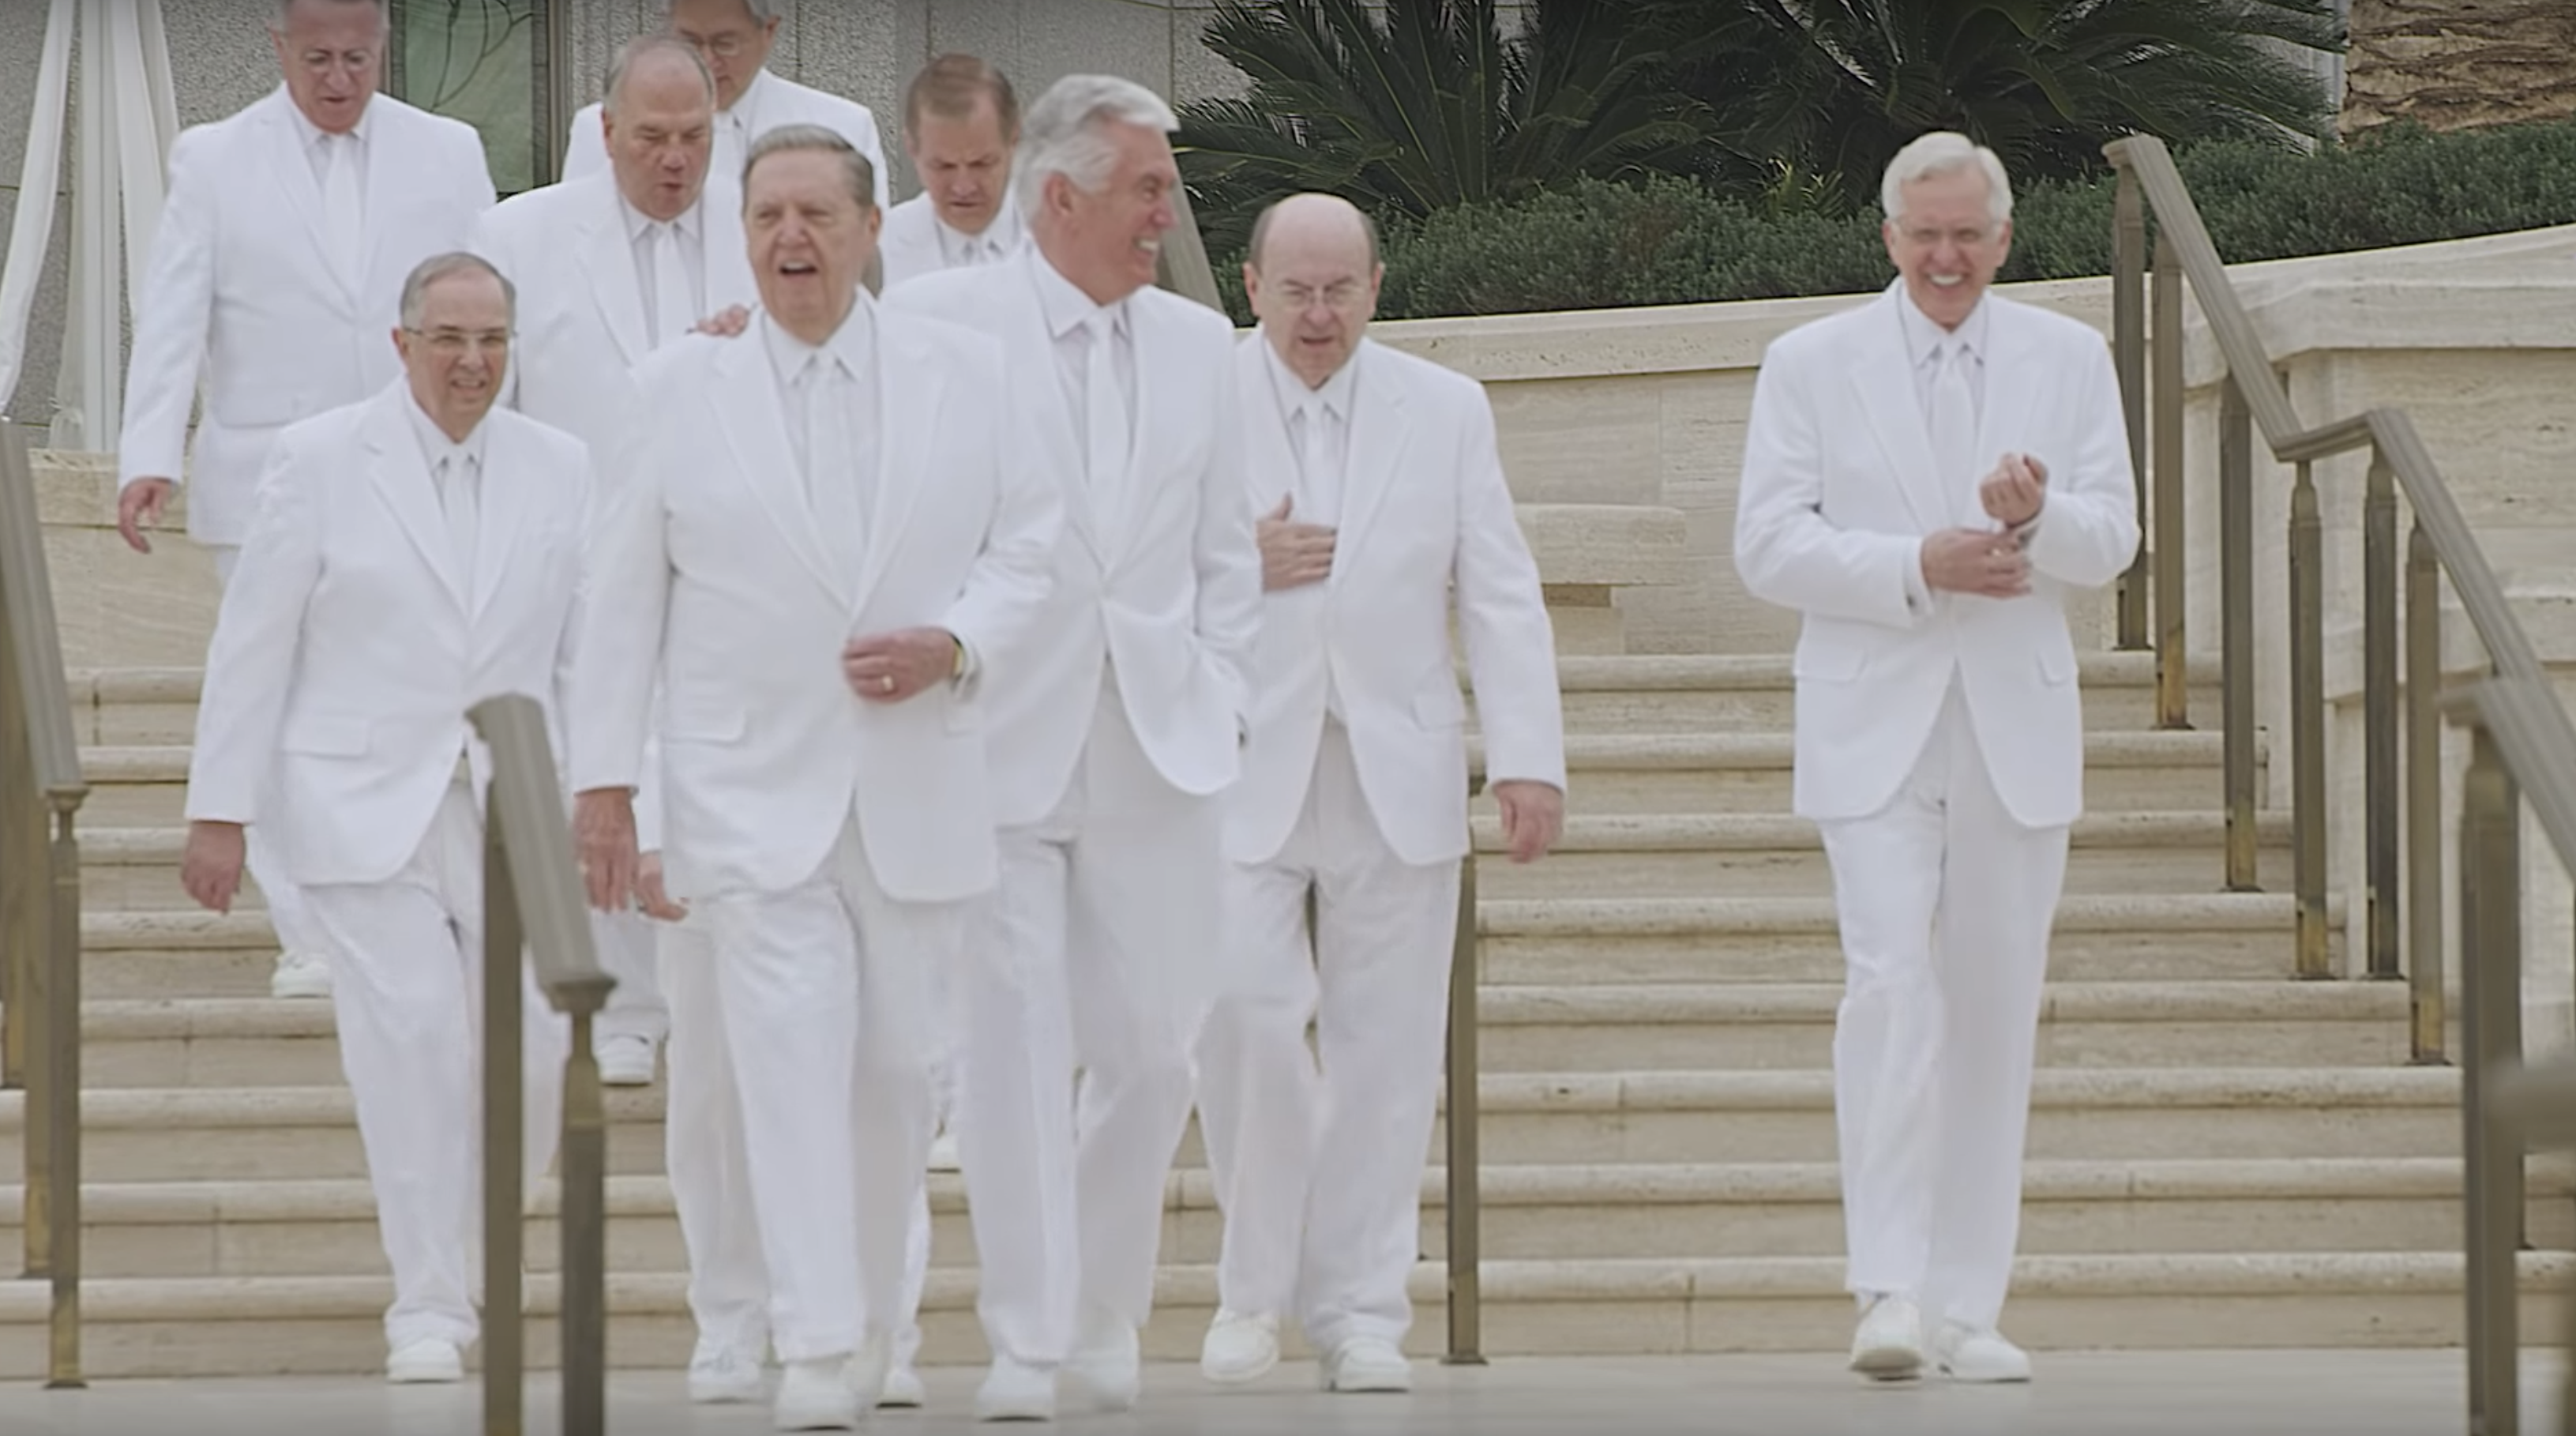 Members of the Quorum of the Twelve Apostles gather at the Rome Italy Temple grounds.